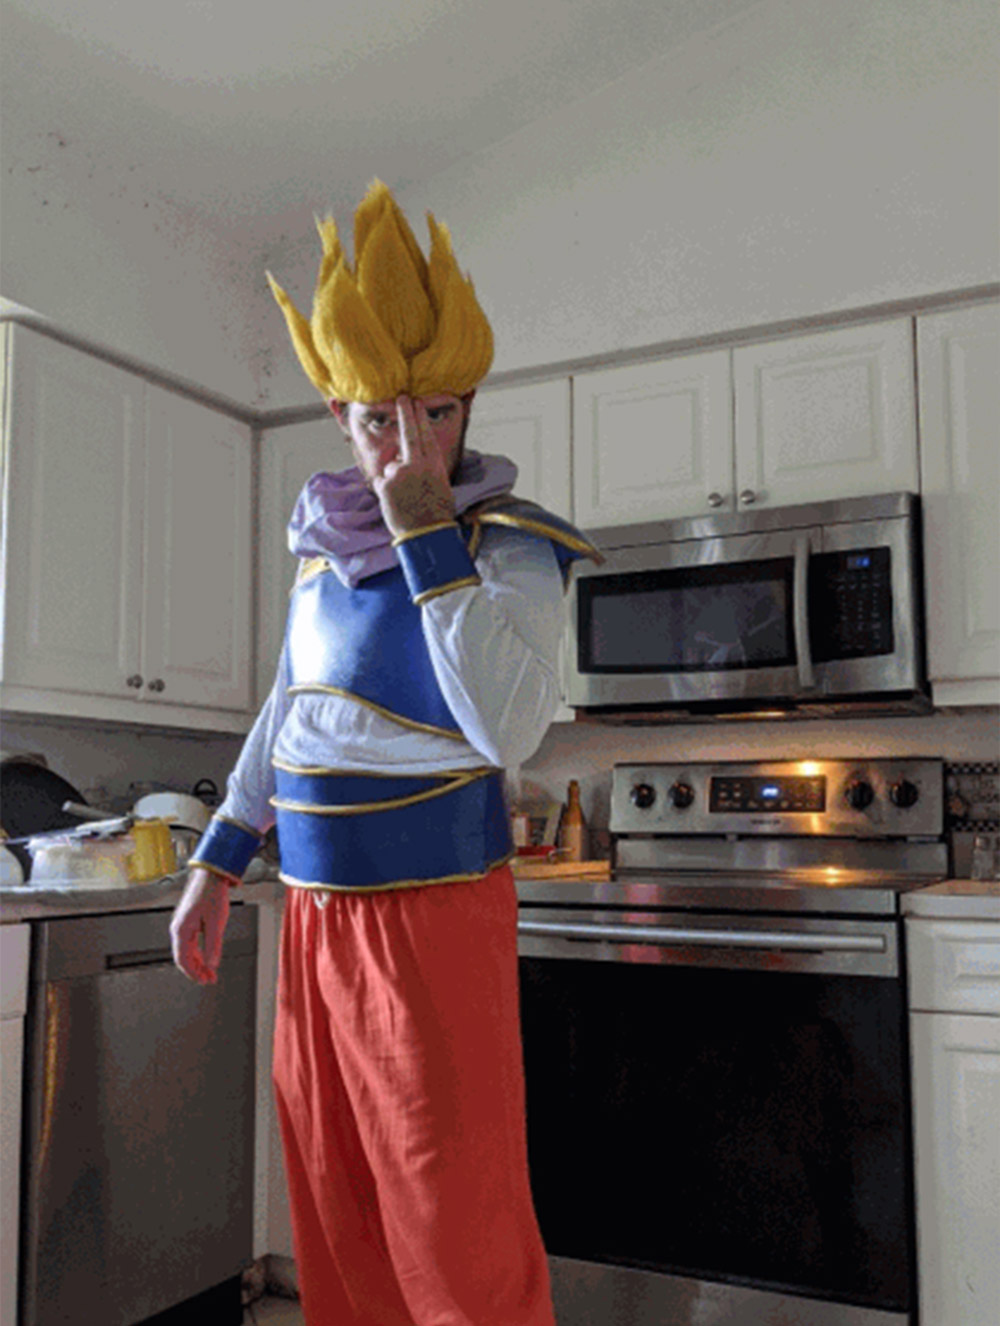 """Goku Yardrat Eva foam armour"" by Kyle WADE"